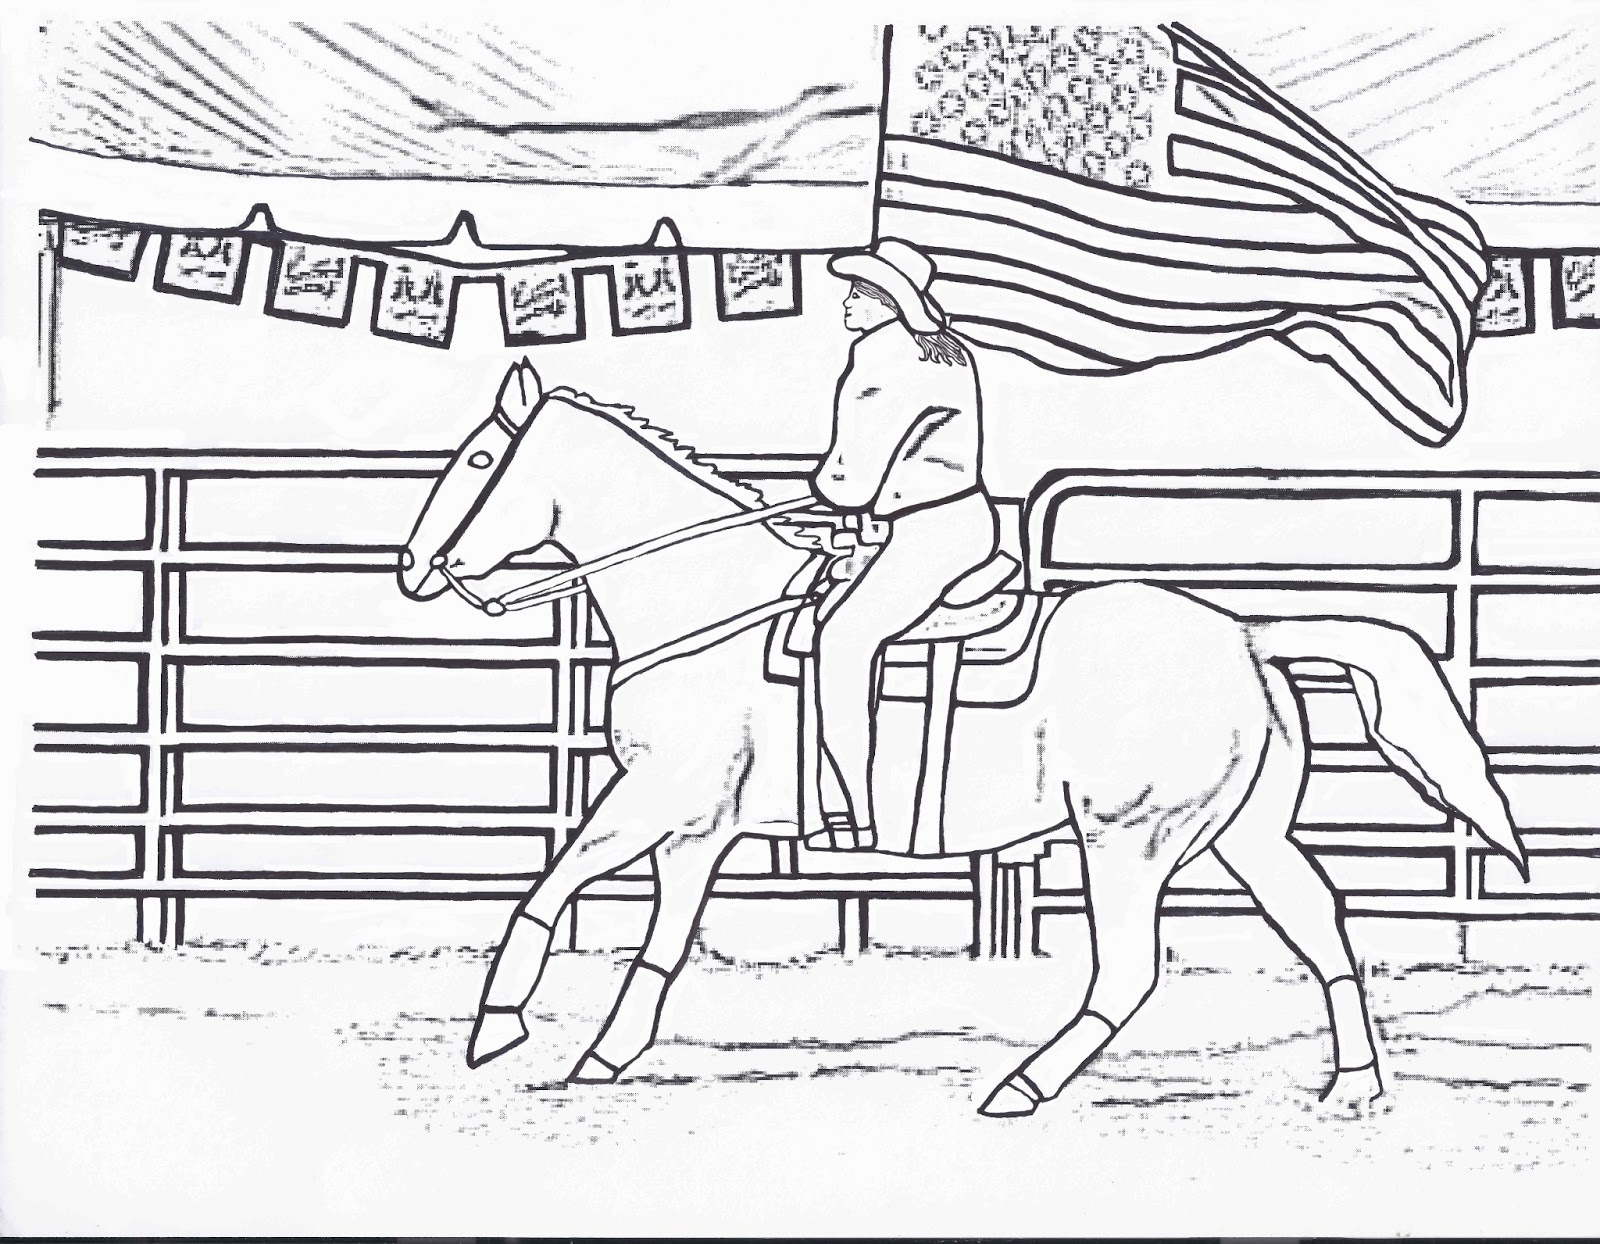 rodeo coloring pages - rodeo coloring pages rodeo flag girl color page by